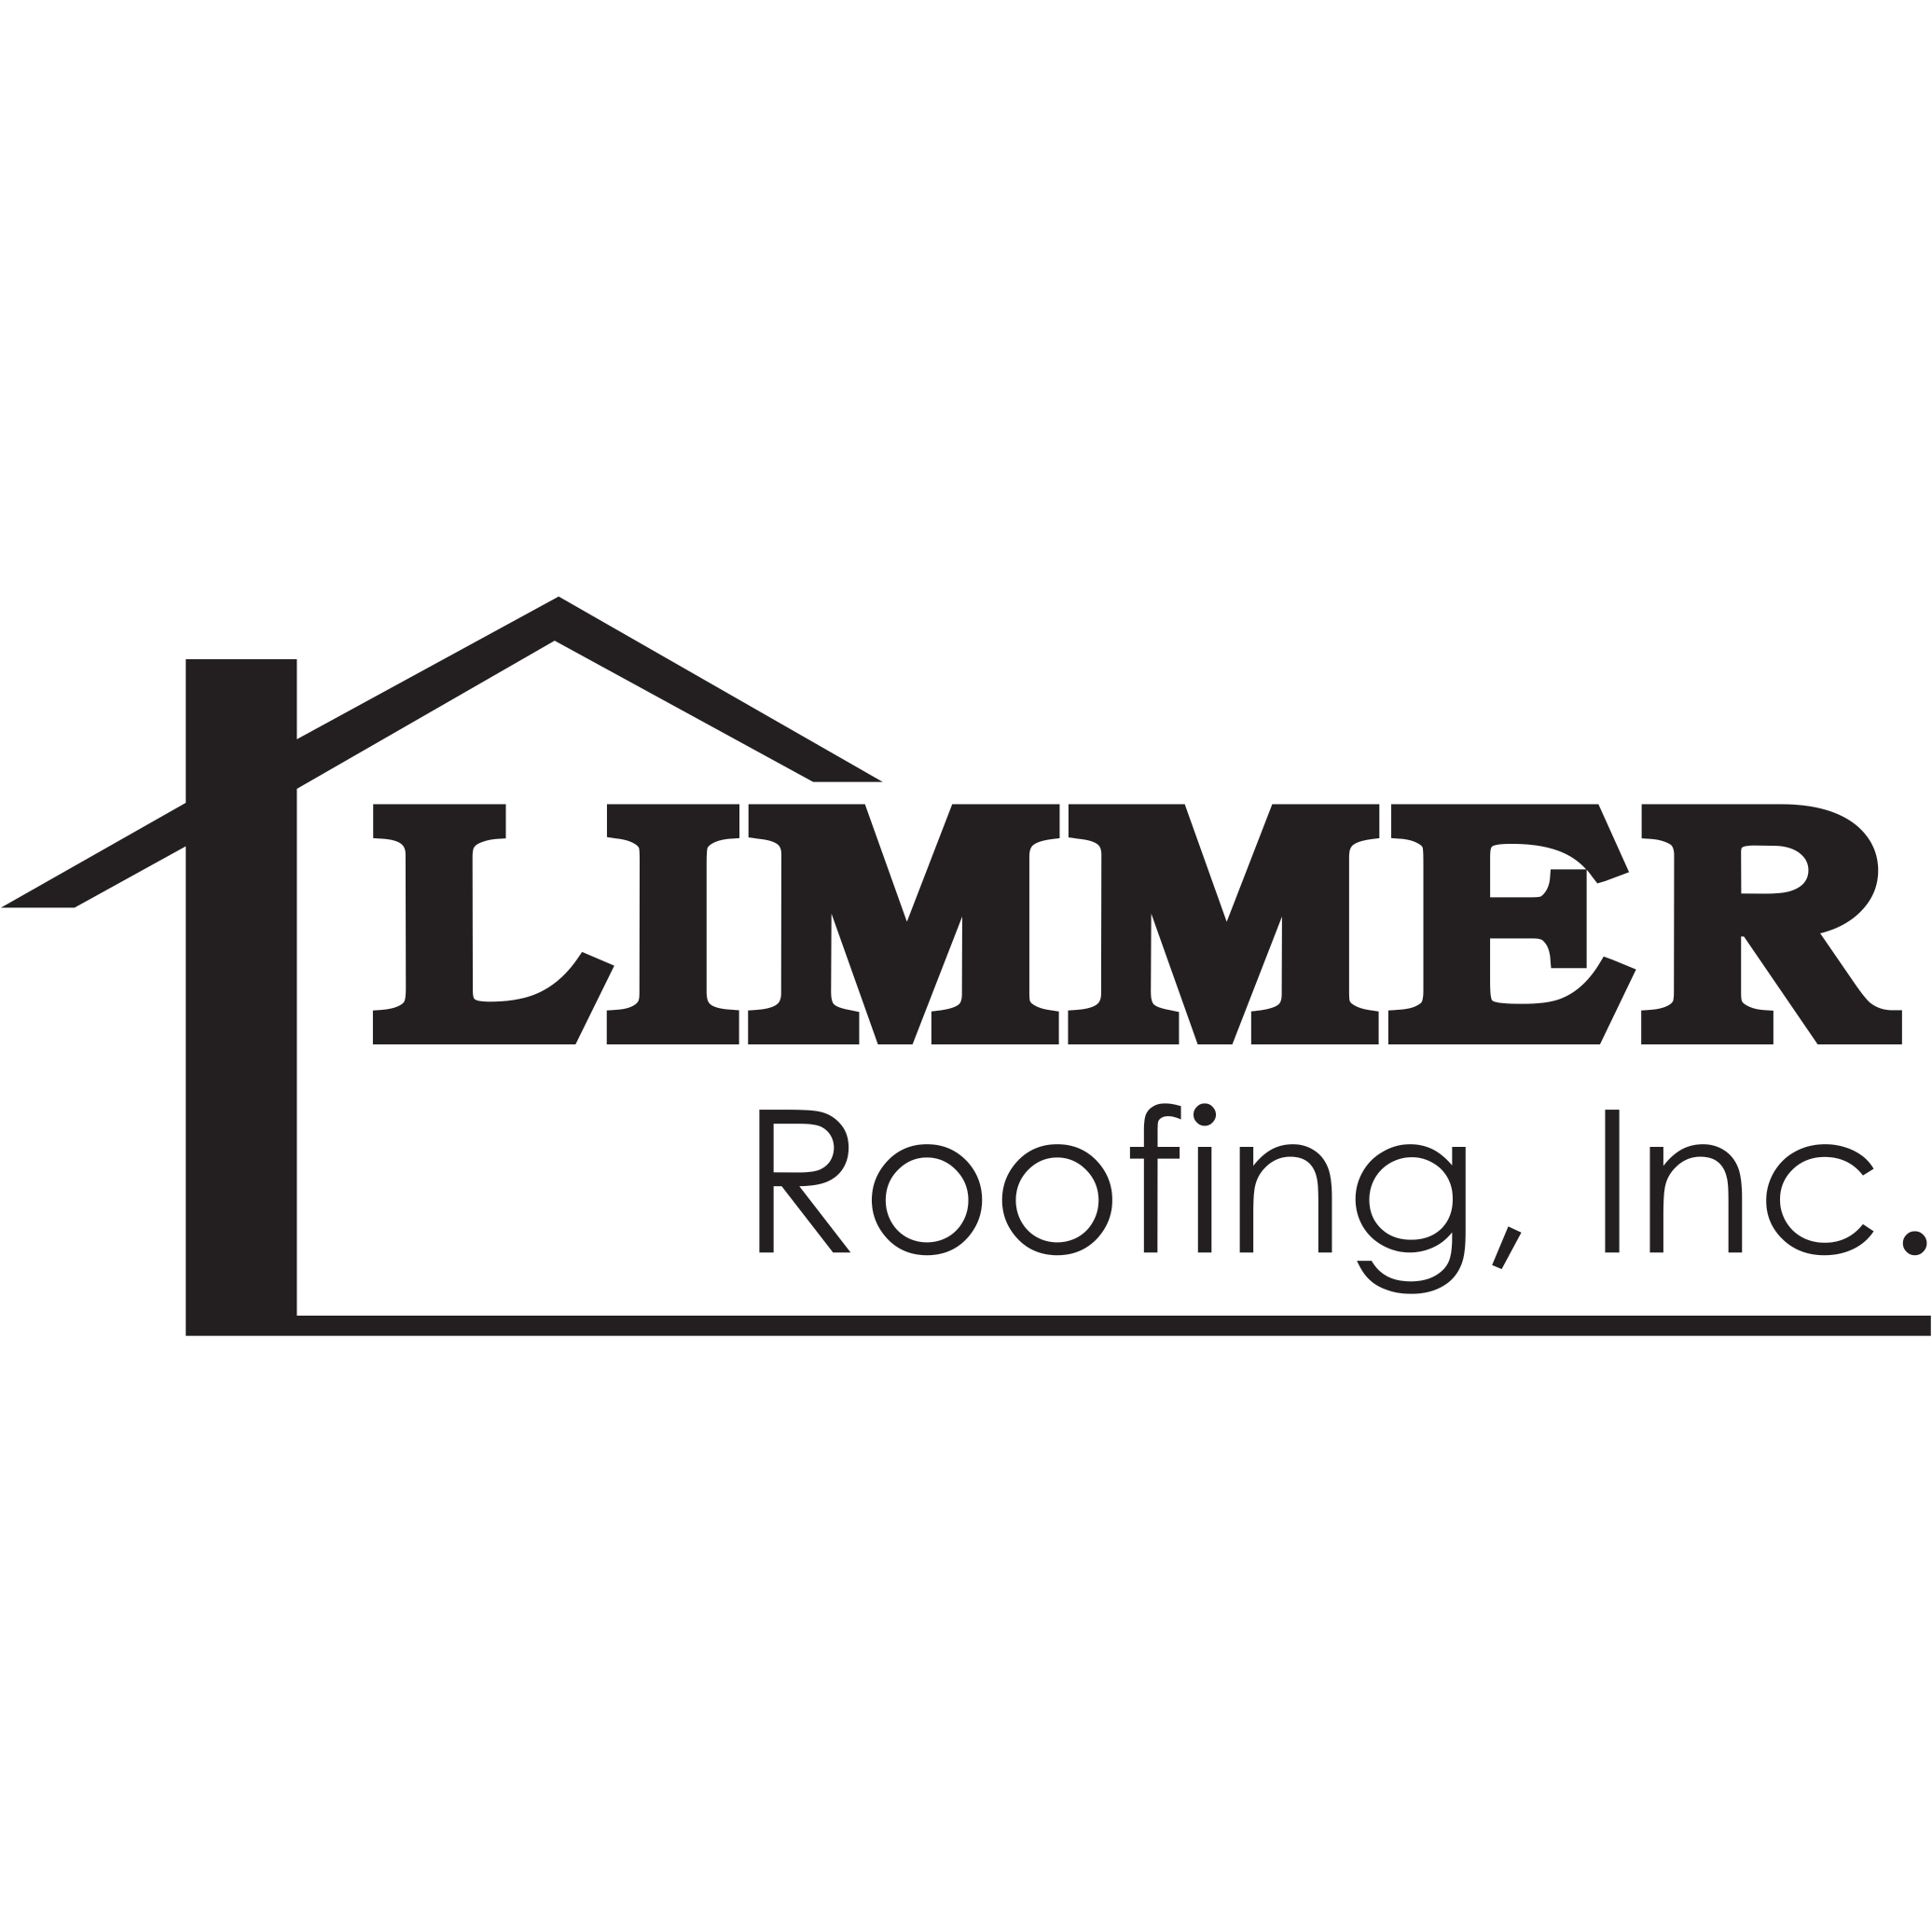 Limmer Roofing, Inc. image 9